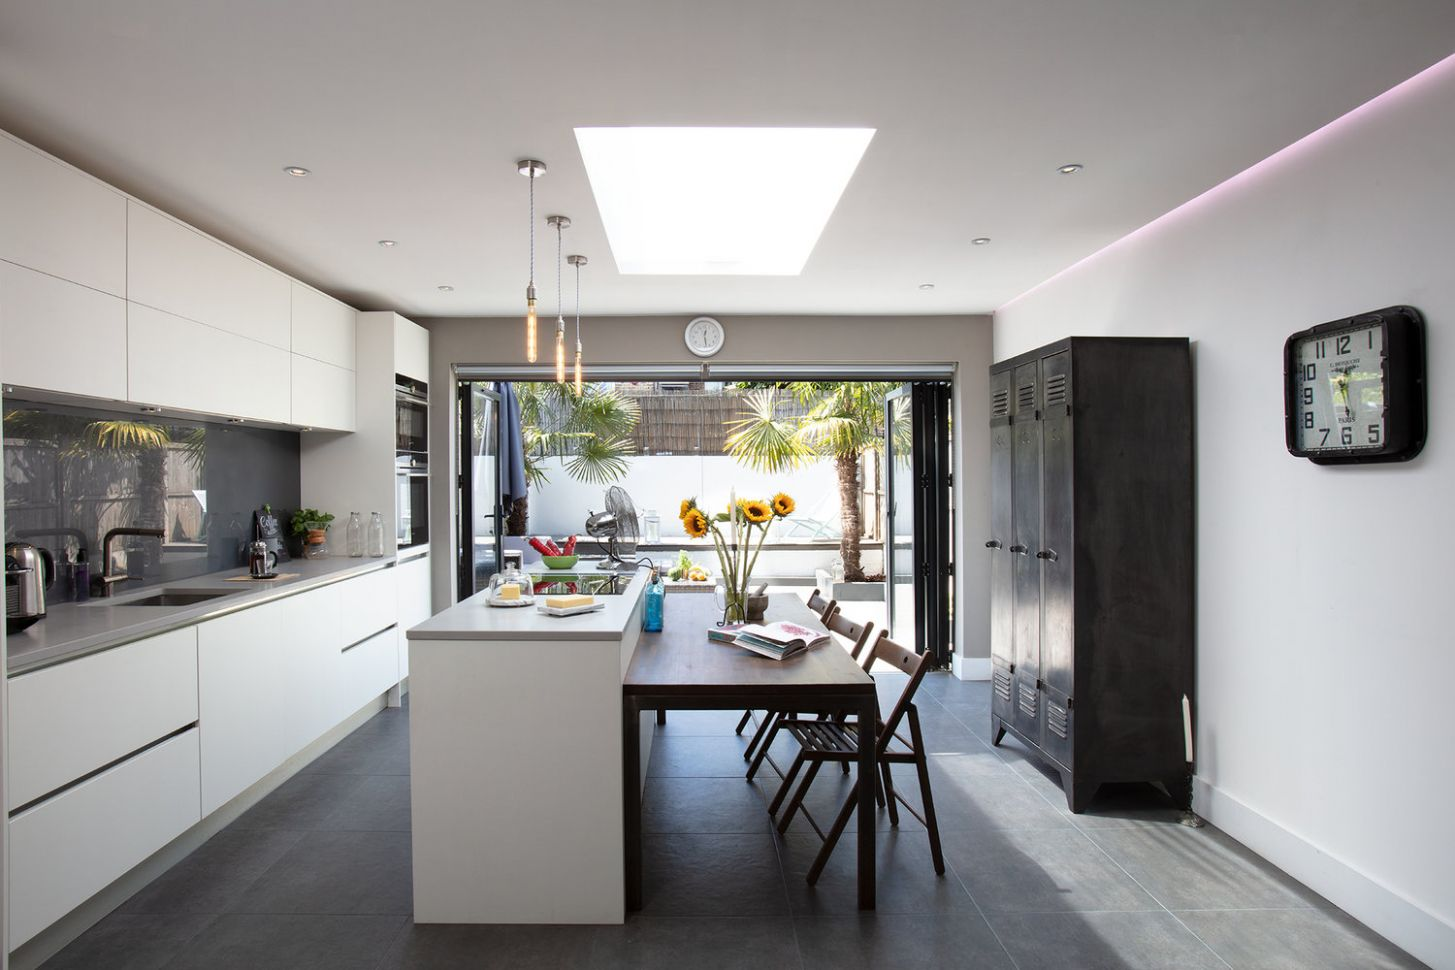 EALING Kitchen Extension Studio Schubert — Studio Schubert ...